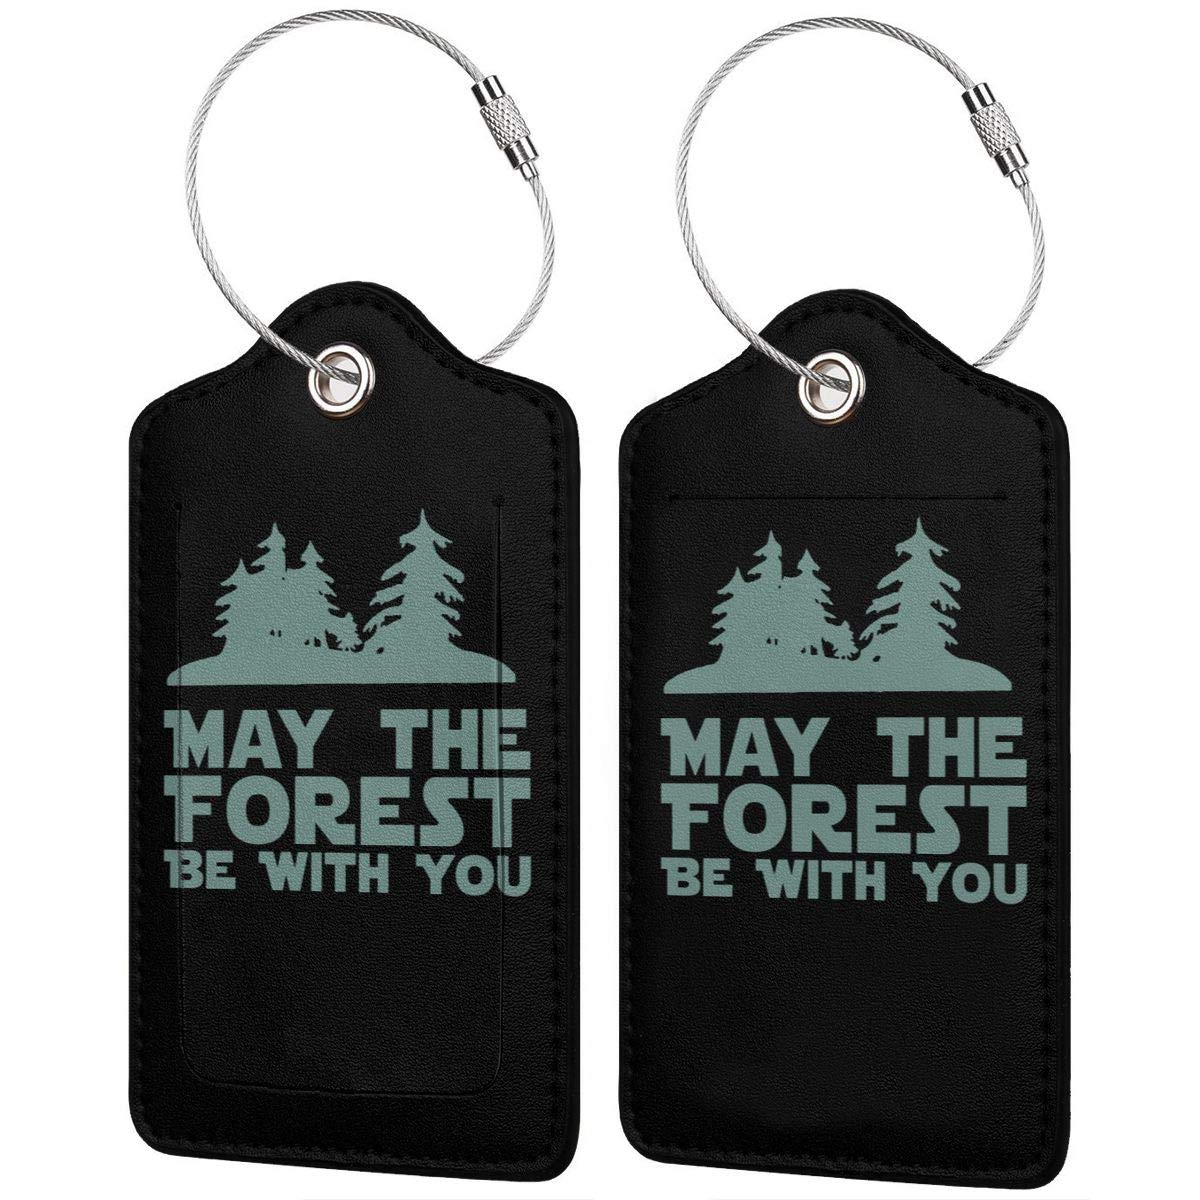 May The Forest Be With You Leather Luggage Tag Travel ID Label For Baggage Suitcase